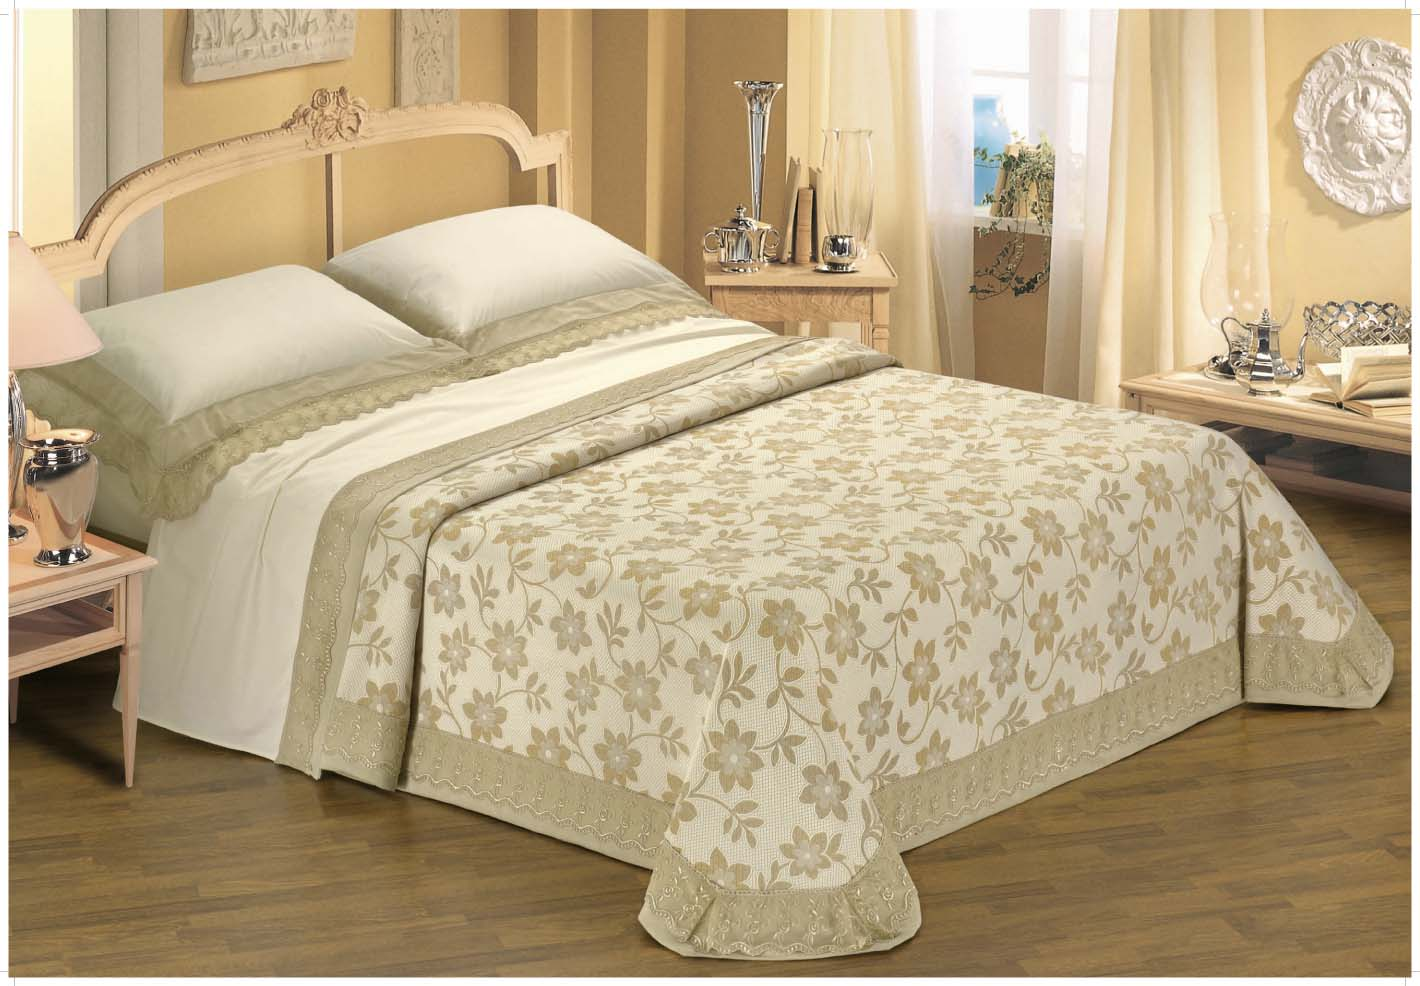 Delightful Bed Linen Sheet Set